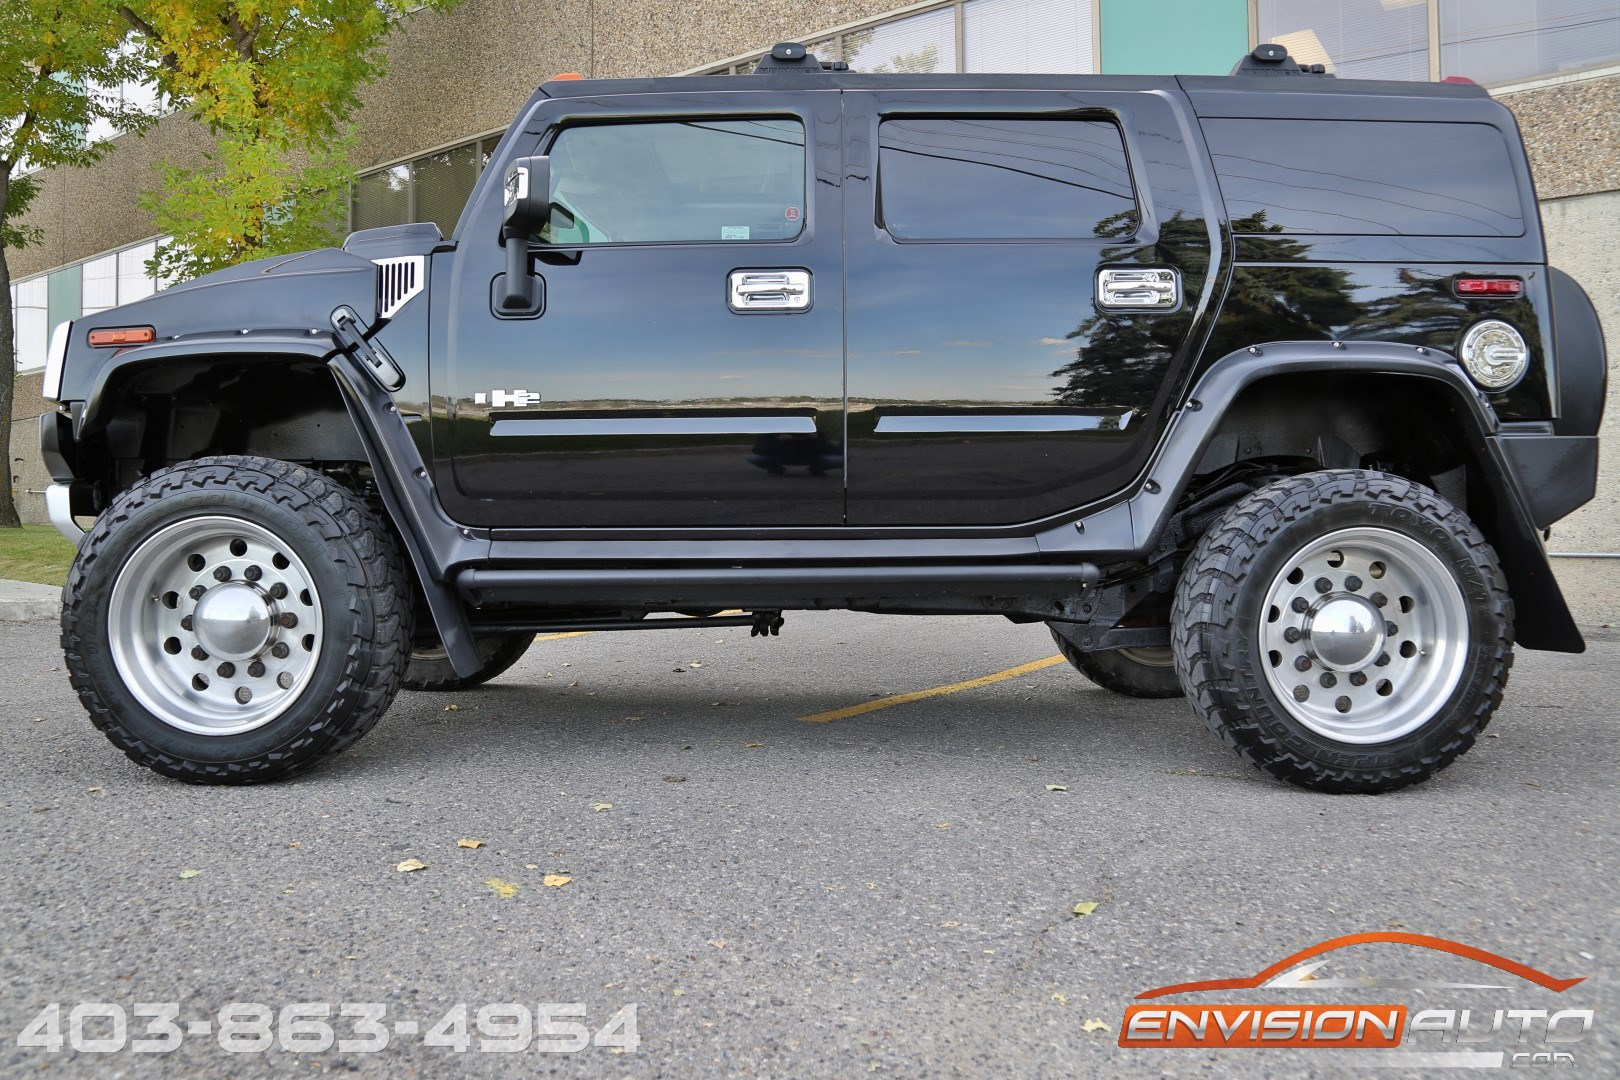 2008 H2 Hummer Suv Huge 6in Lift 37in Tires Flares